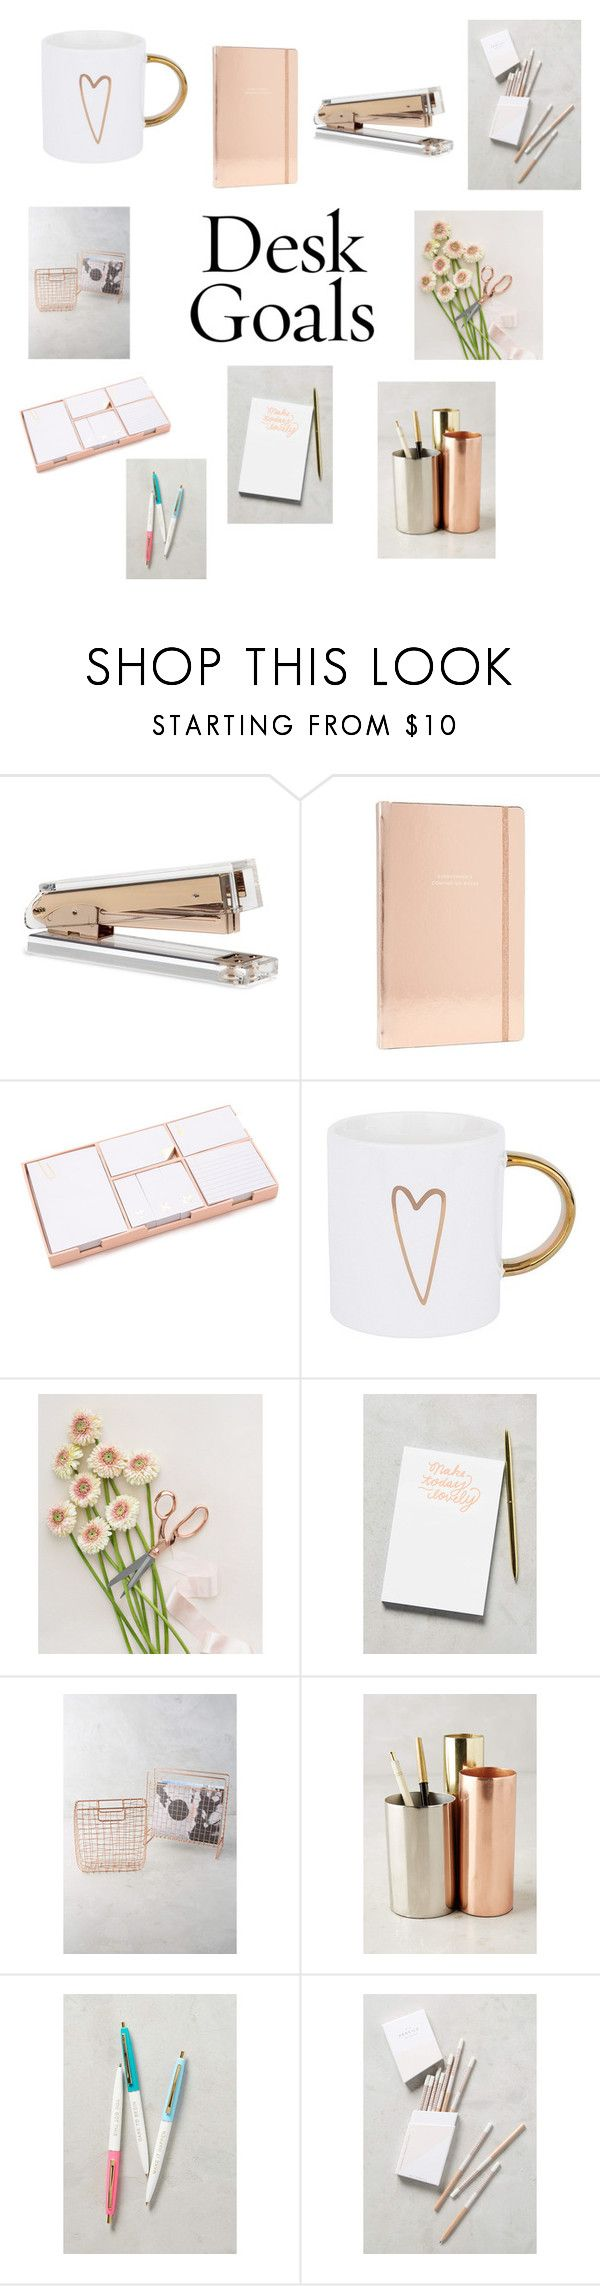 """Rose Gold Desk Goals"" by redenjewelry on Polyvore featuring interior, interiors, interior design, home, home decor, interior decorating, Kate Spade, West 